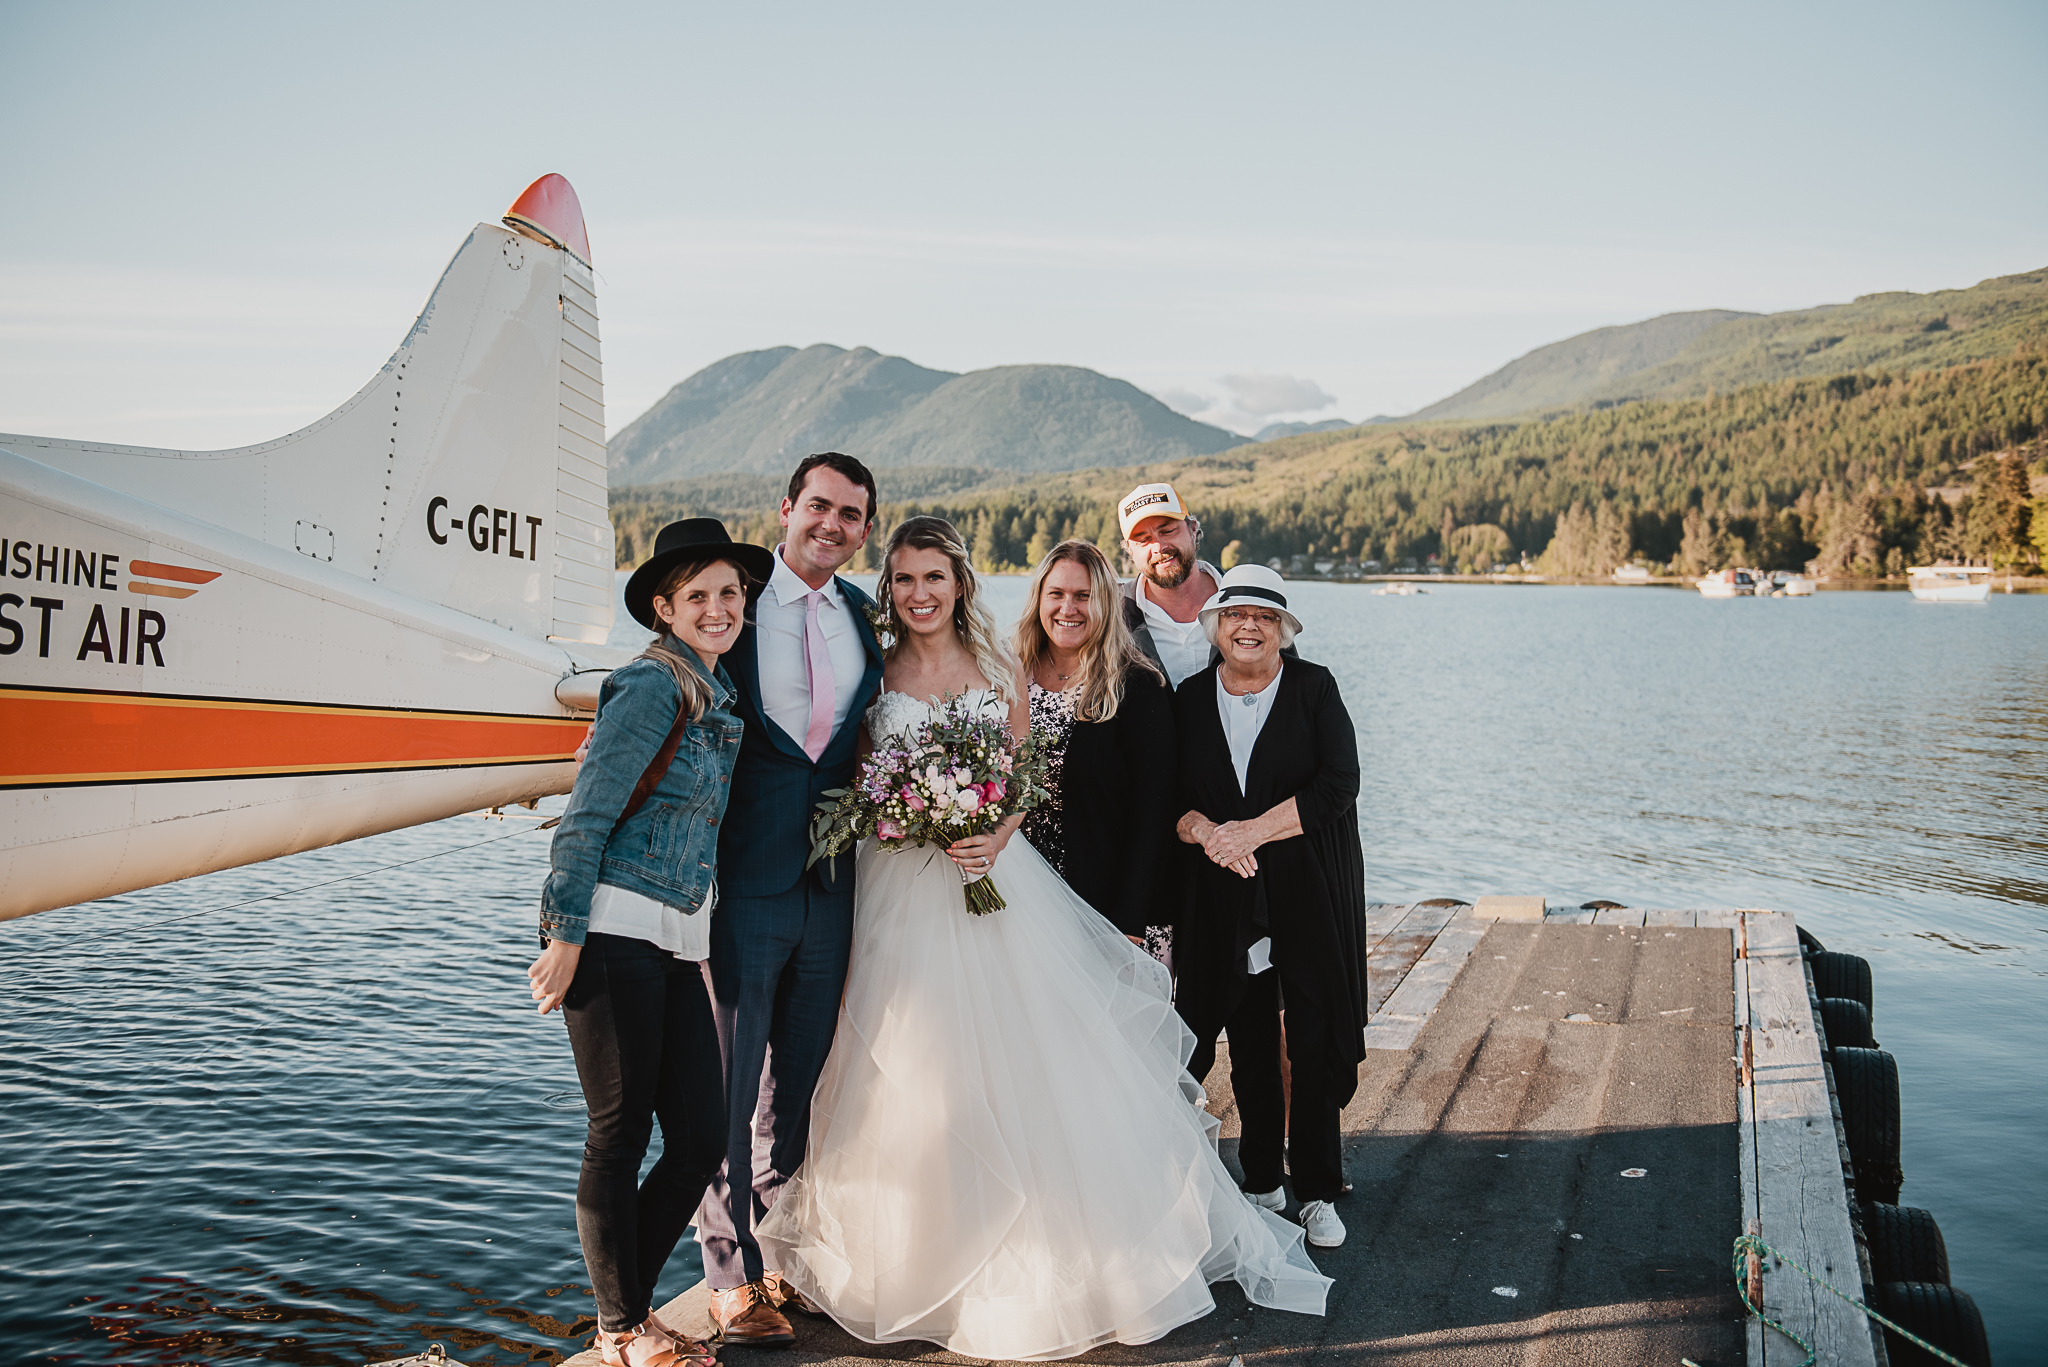 Coastal Weddings and Events, Paige Lorraine Photography and Sunshine Coast Air and Patricia Carswell Officiant Elopement Team.